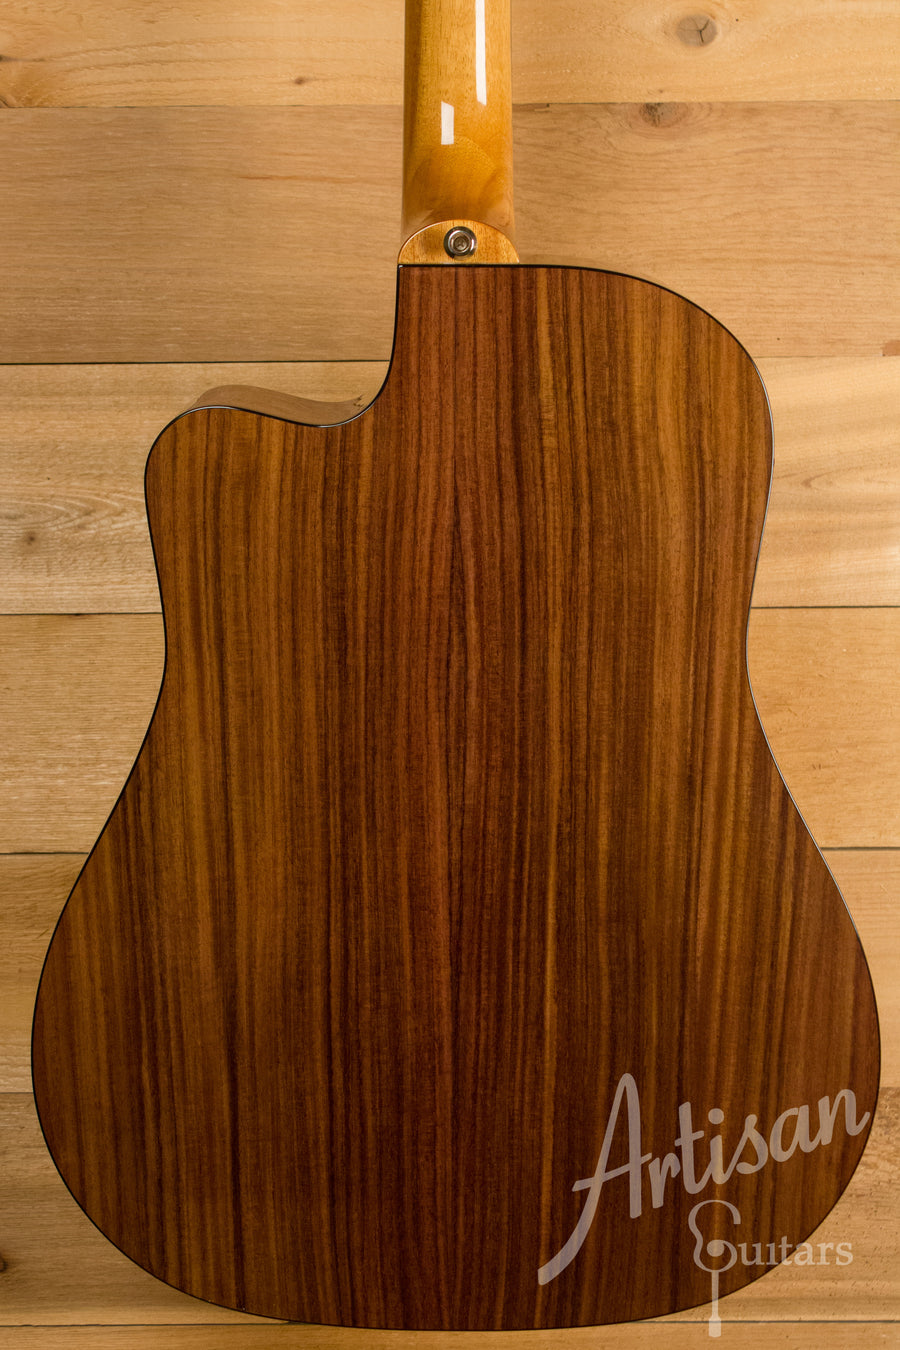 Maton TE1 Guitar Tommy Emmanuel Artist Sitka Spruce and Indian Rosewood AP5 Pro Pre-Owned 2014 ID-11174